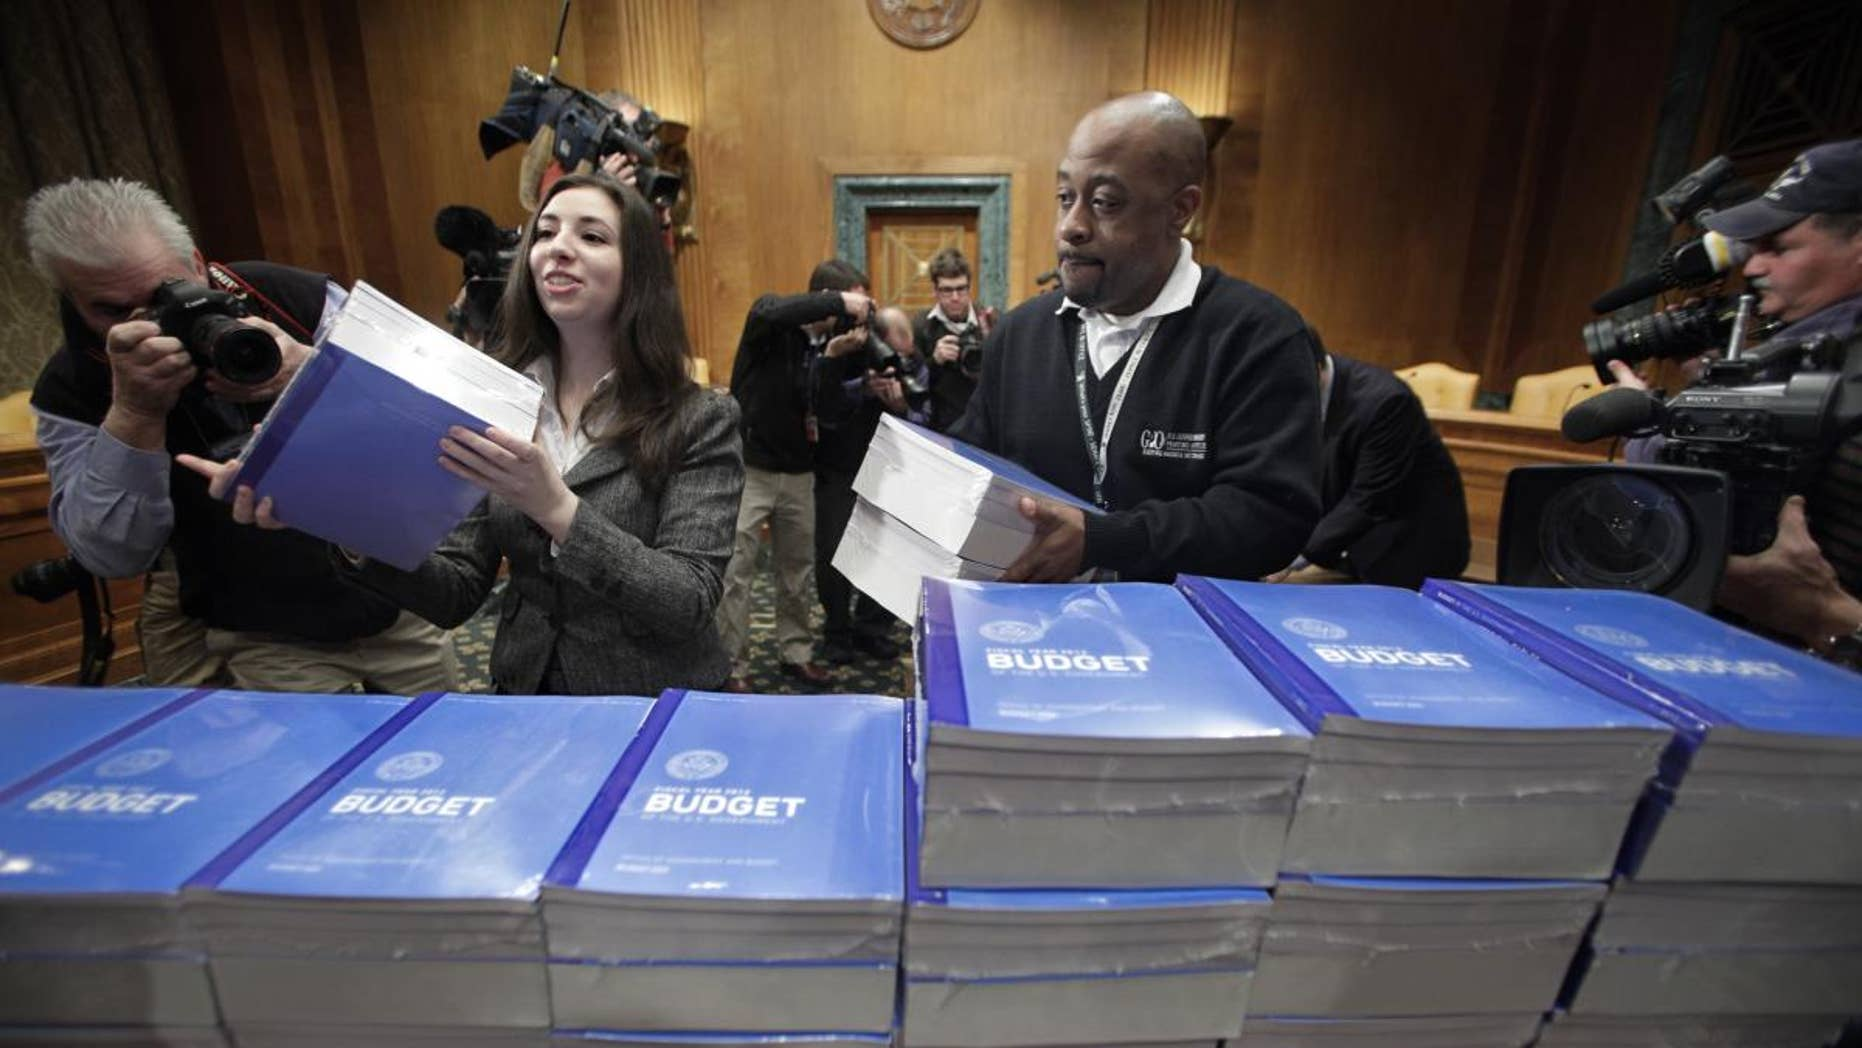 Copies of President Obama's 2012 budget are delivered to the Senate Budget Committee, Monday, Feb. 14, 2011, on Capitol Hill in Washington. (AP Photo/J. Scott Applewhite)